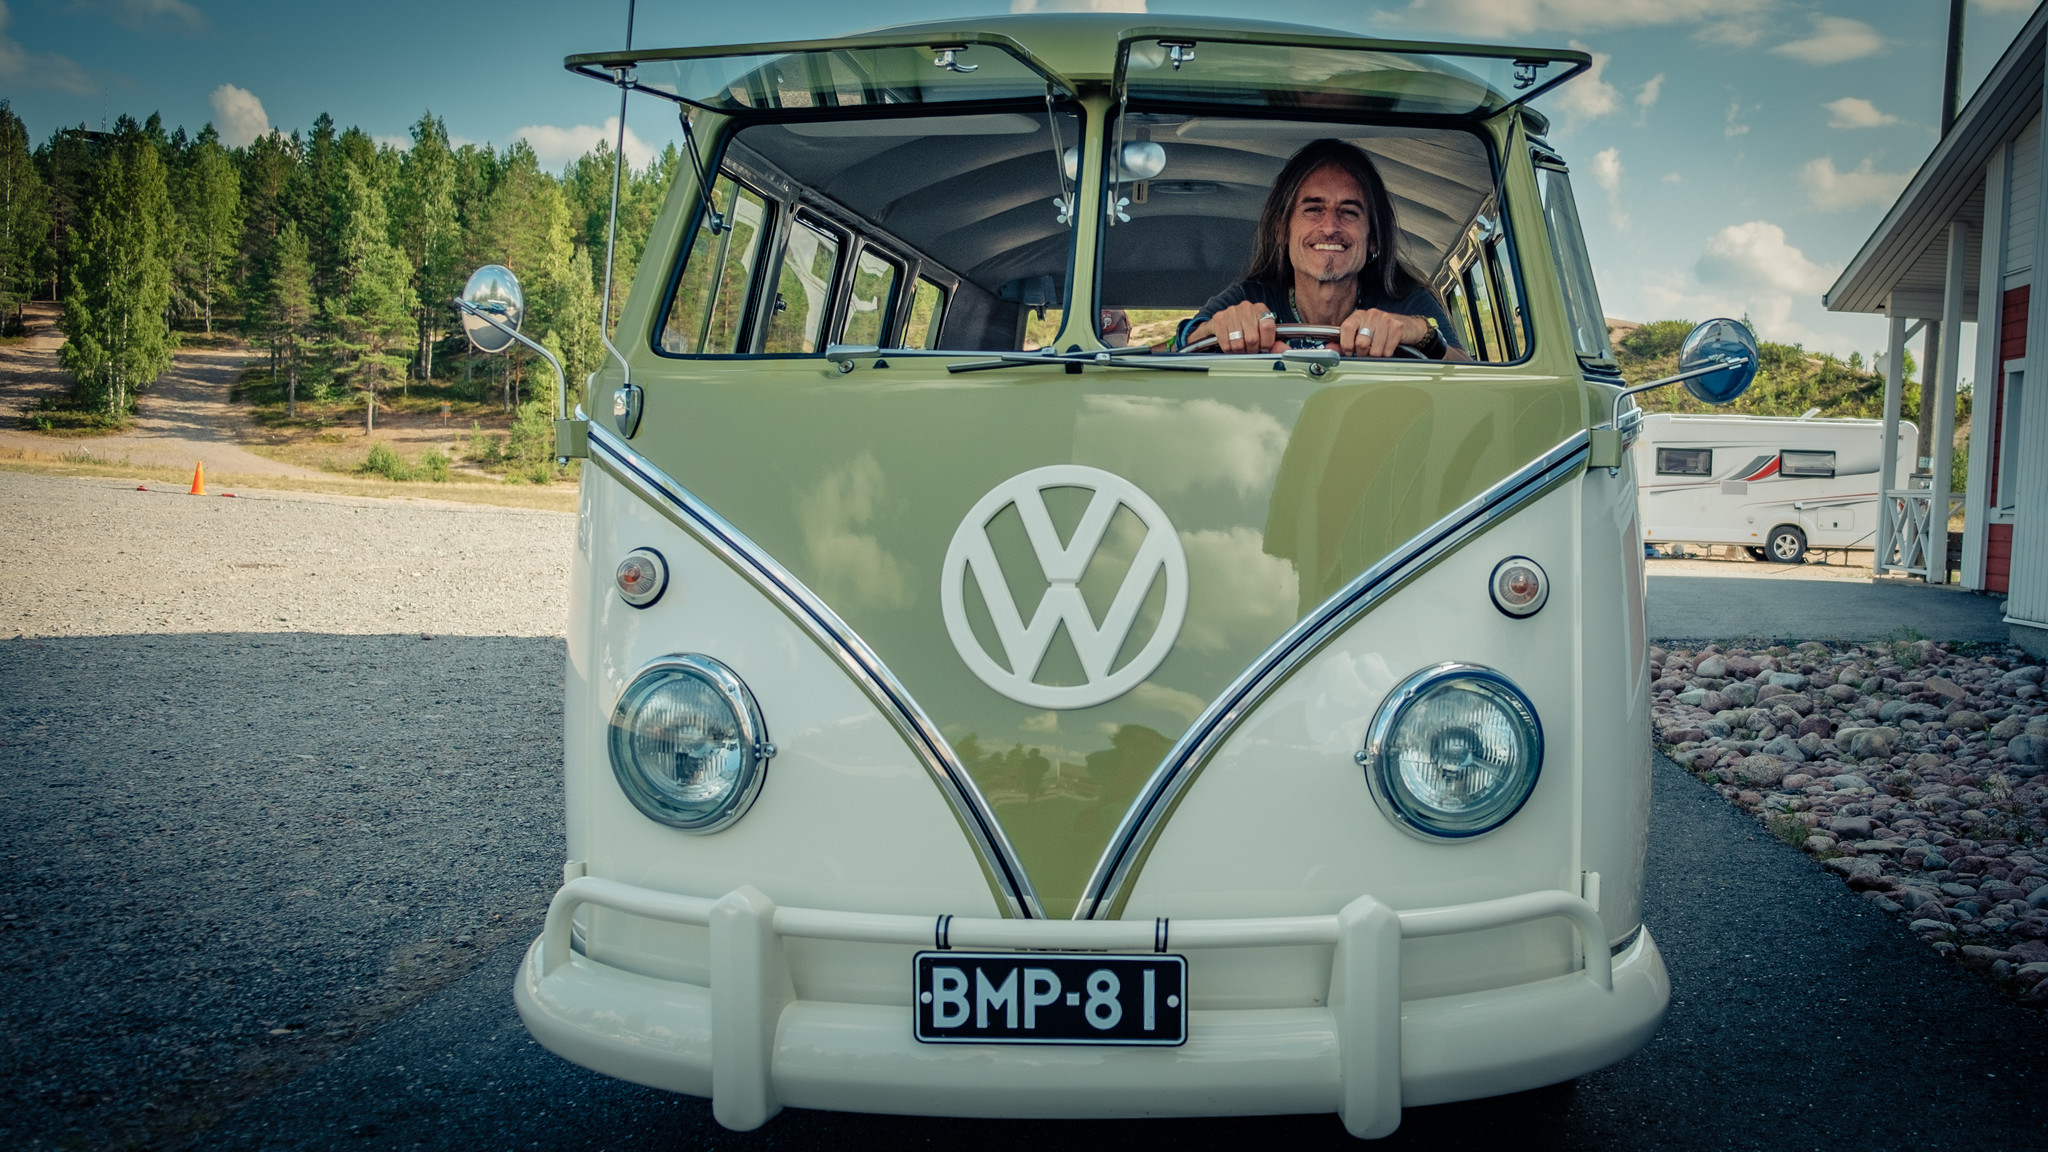 Ronald in VW bus